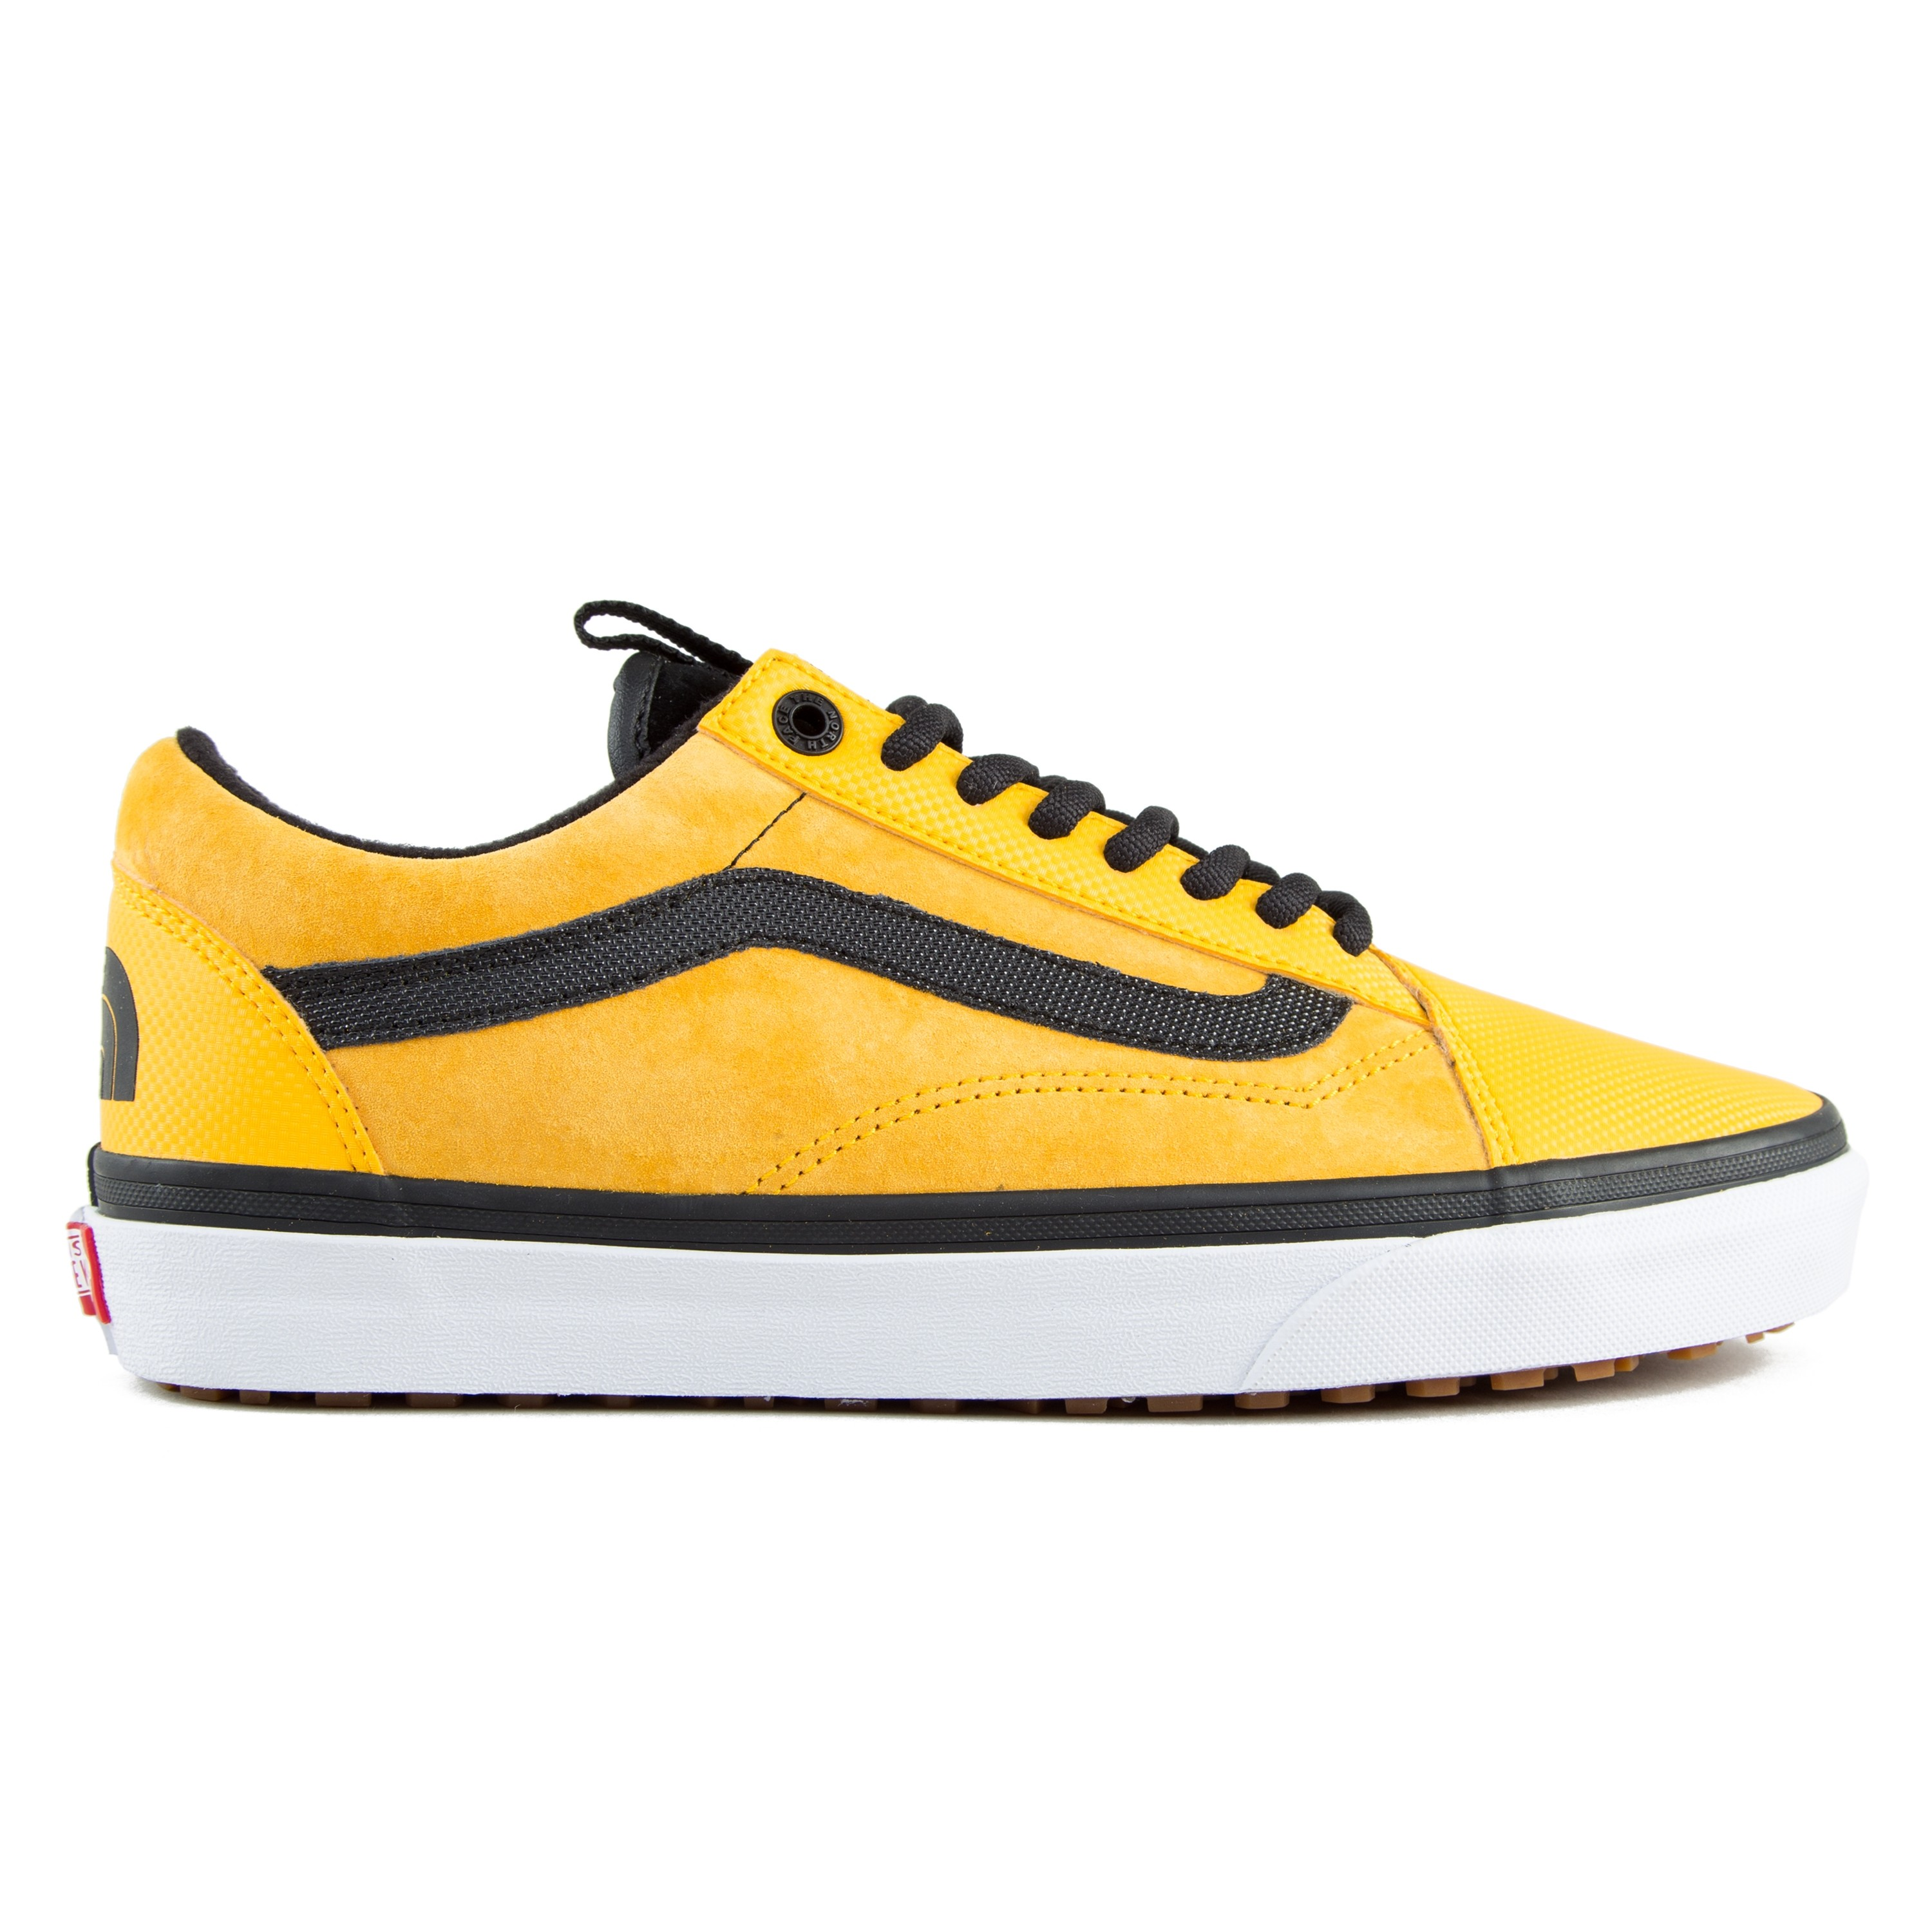 37e6925961 Vans X The North Face Old Skool MTE DX (TNF Yellow Black) - Consortium